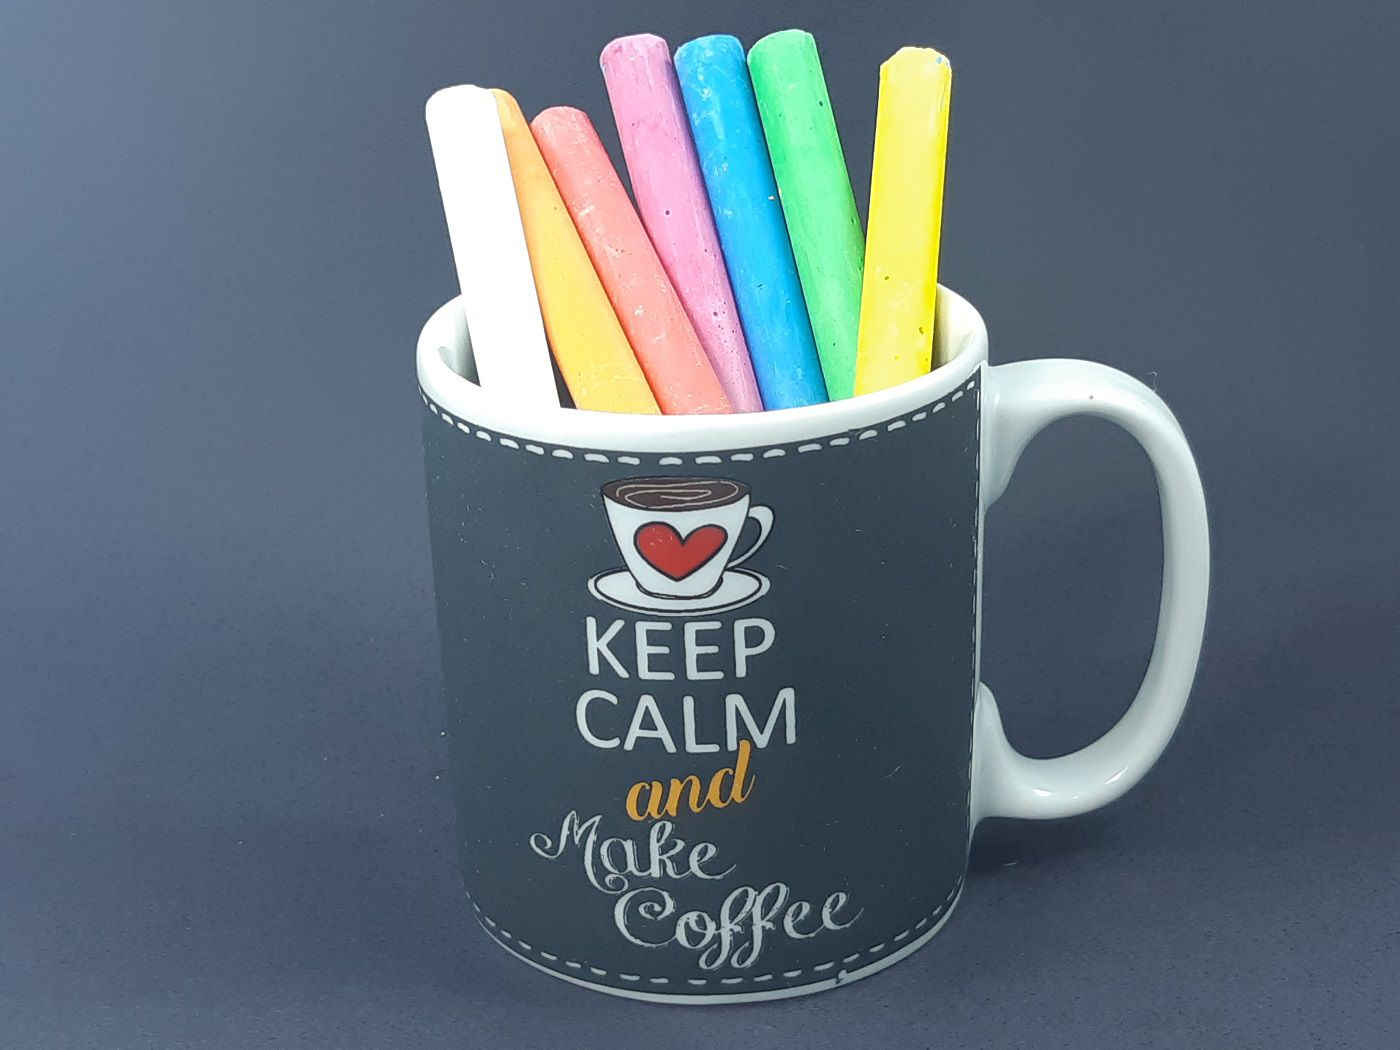 Caneca Keep Calm and Make Coffee  325 ml